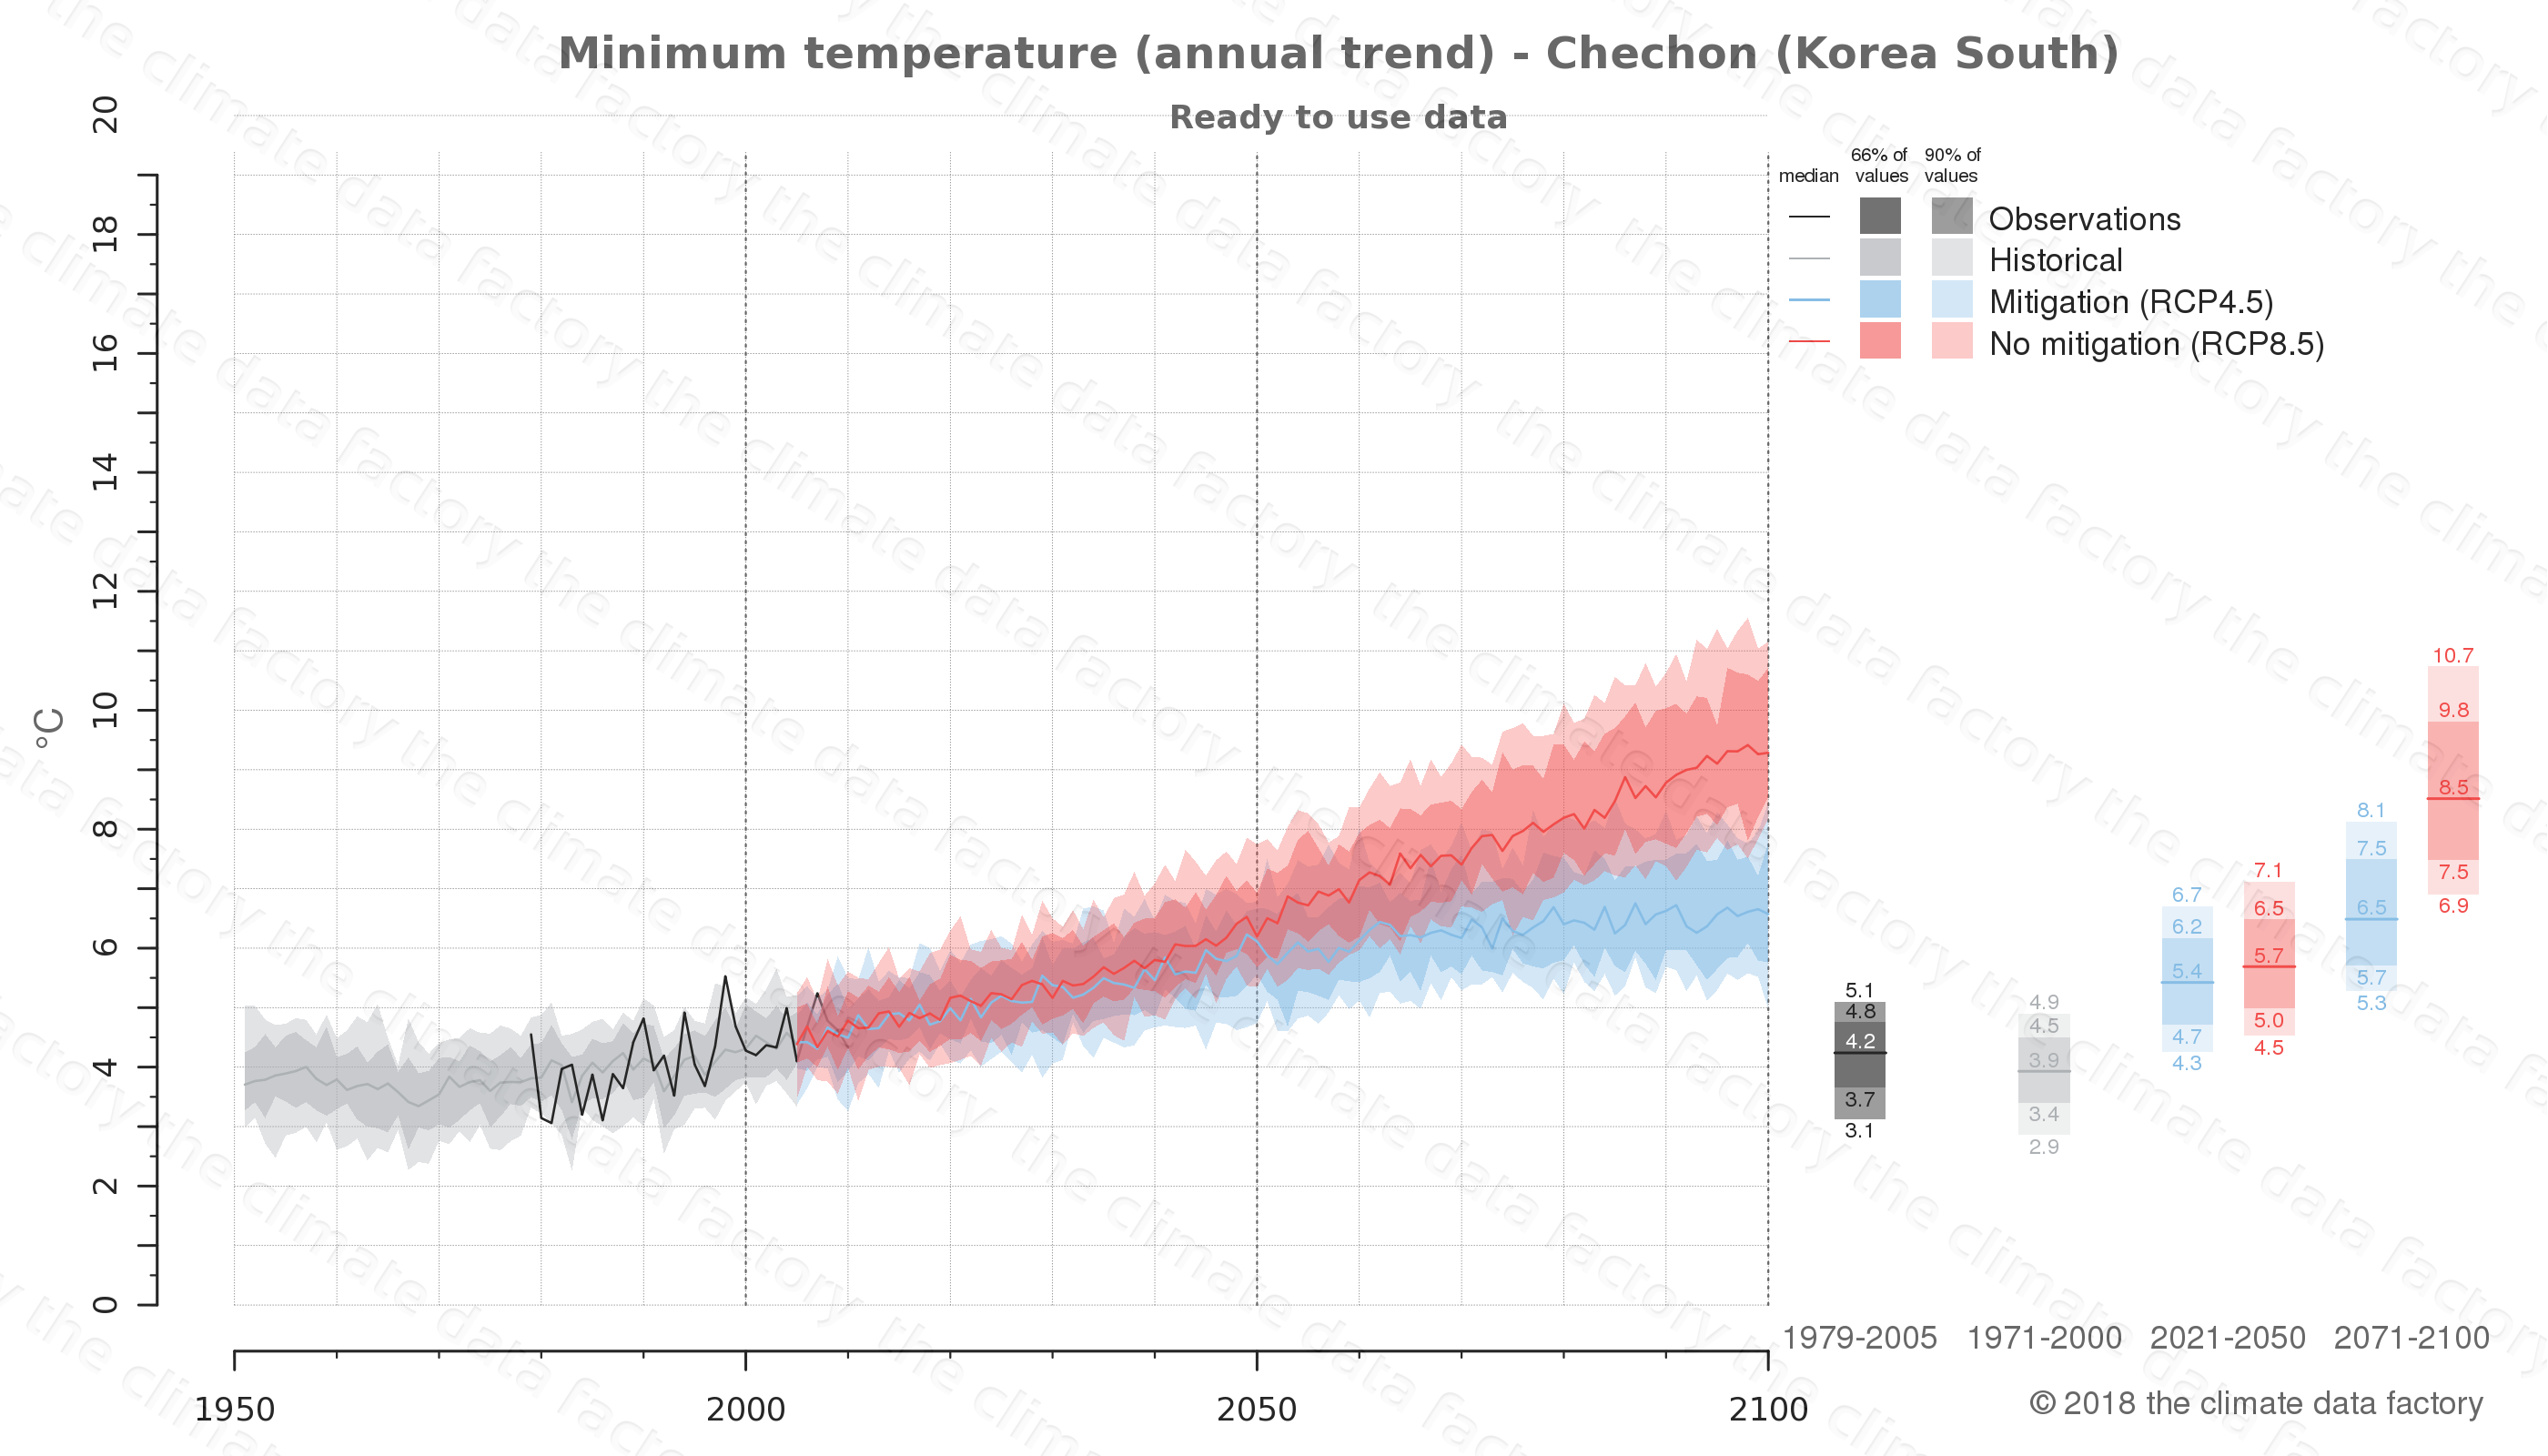 climate change data policy adaptation climate graph city data minimum-temperature chechon south korea